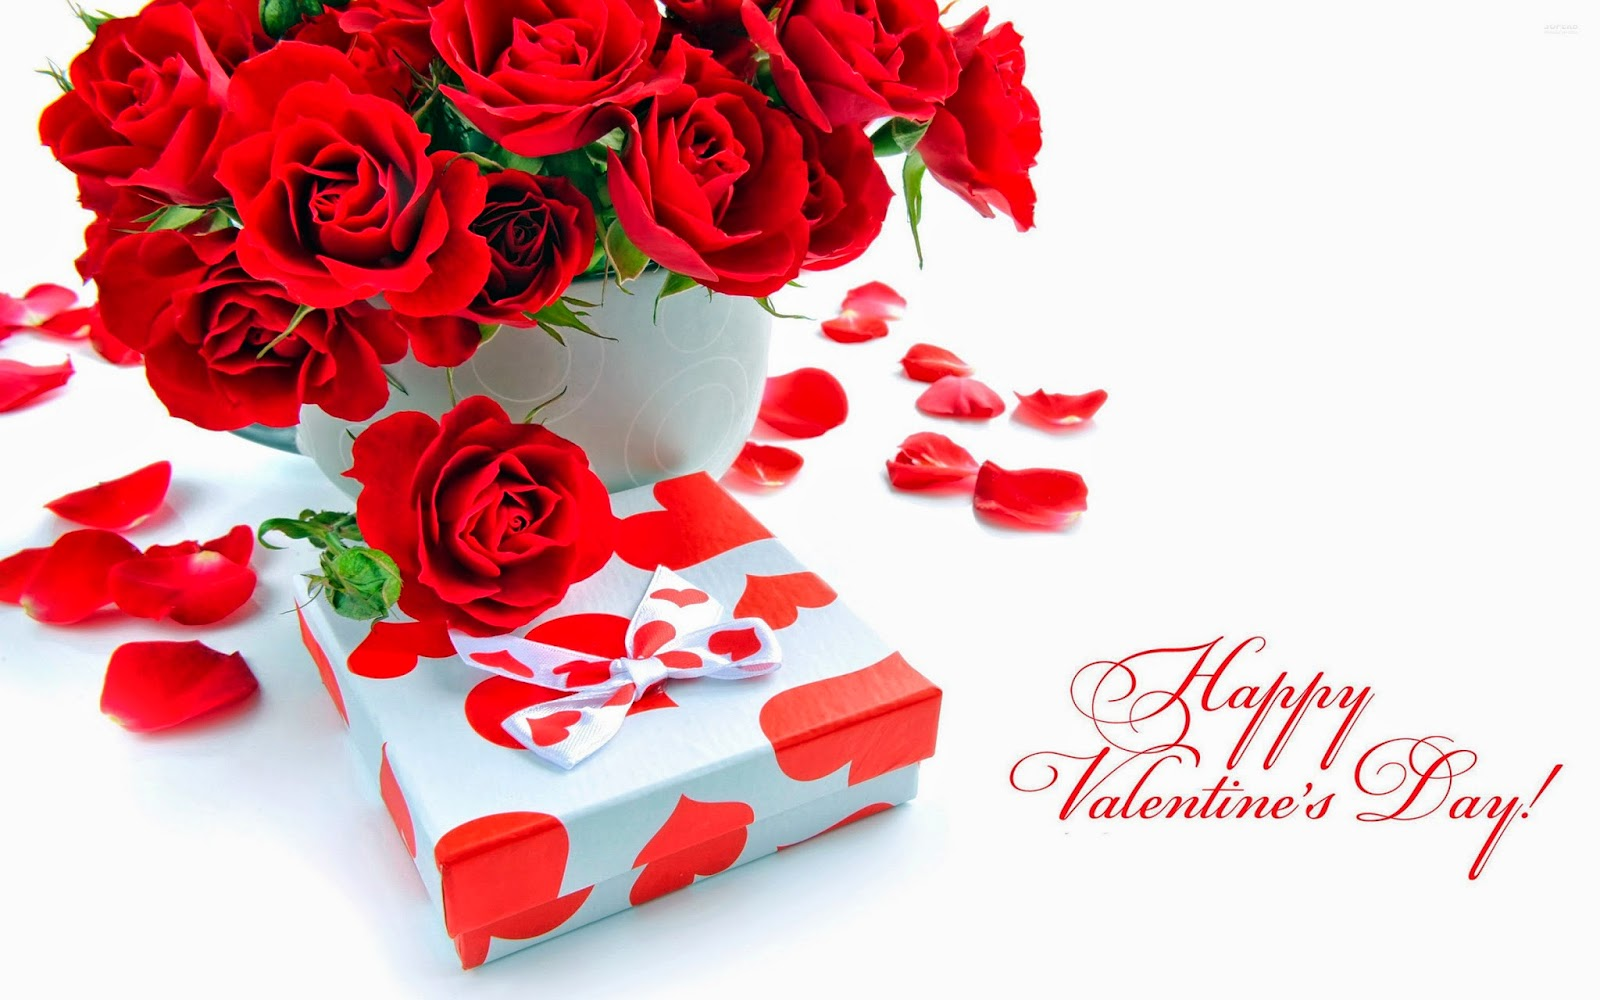 Happy Valentine Day 2017 Picture For WhatsApp